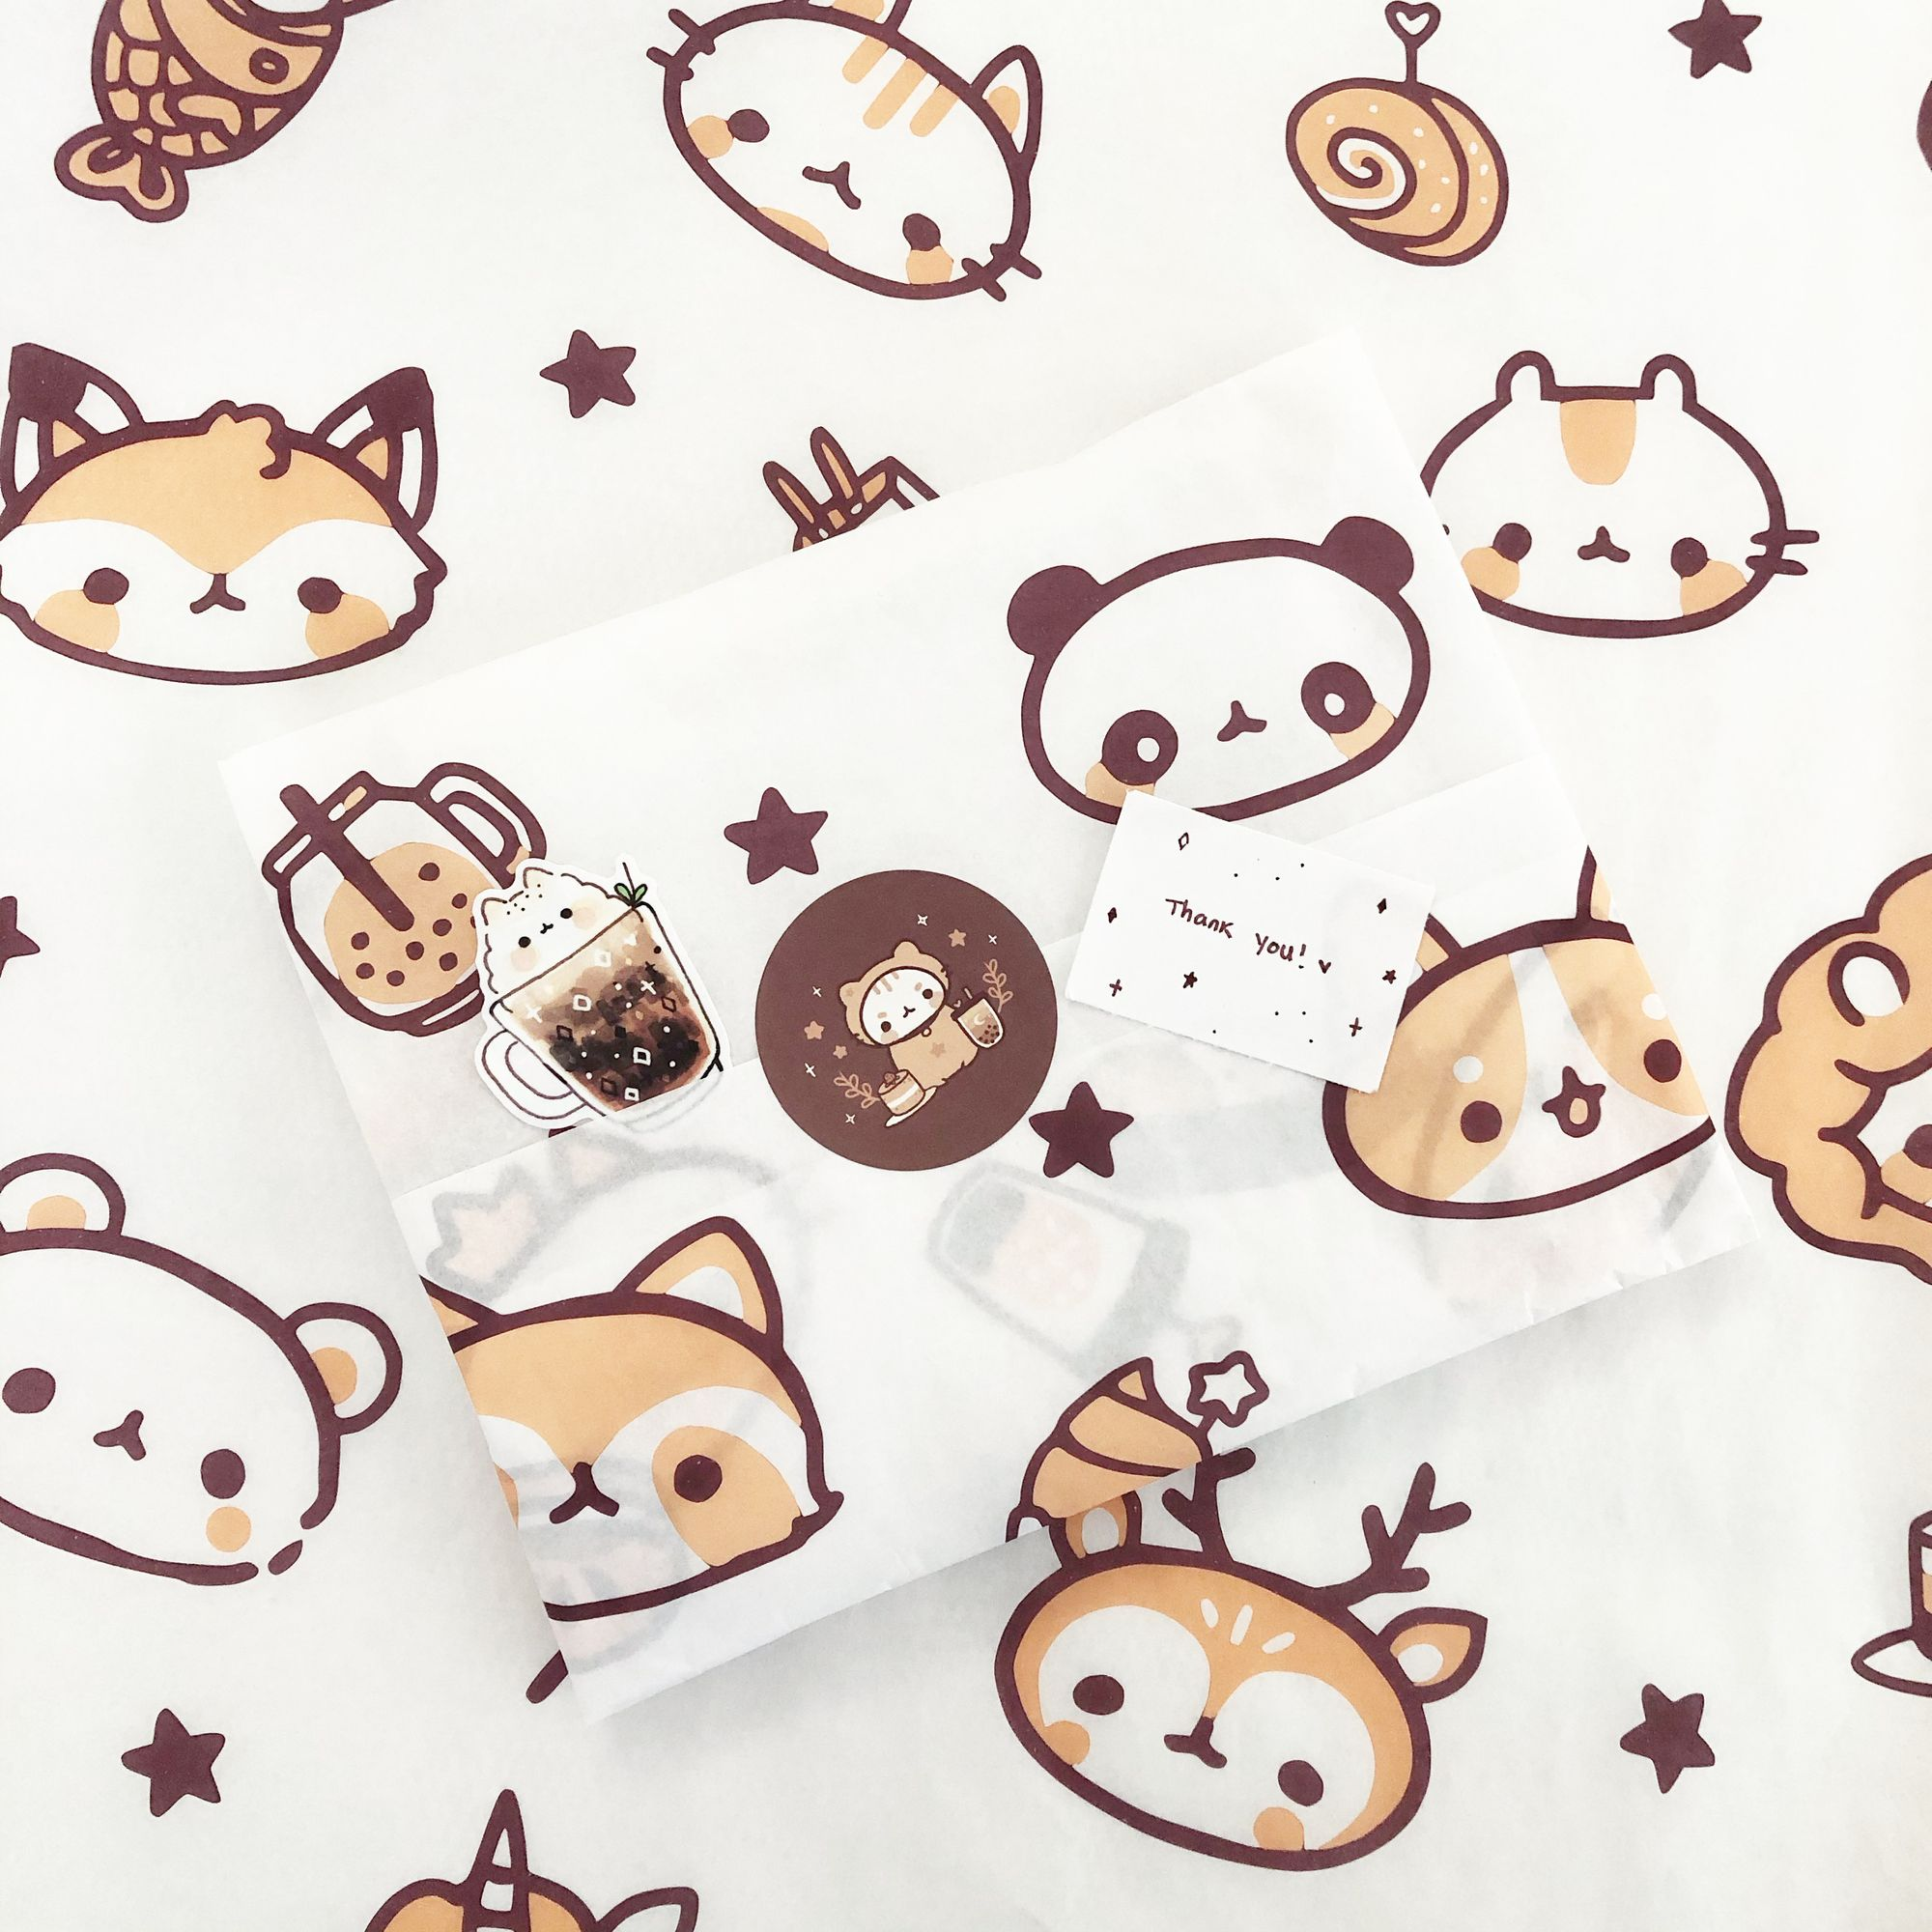 Kawaii Designs and On-Brand Packaging with MochaMochiCake